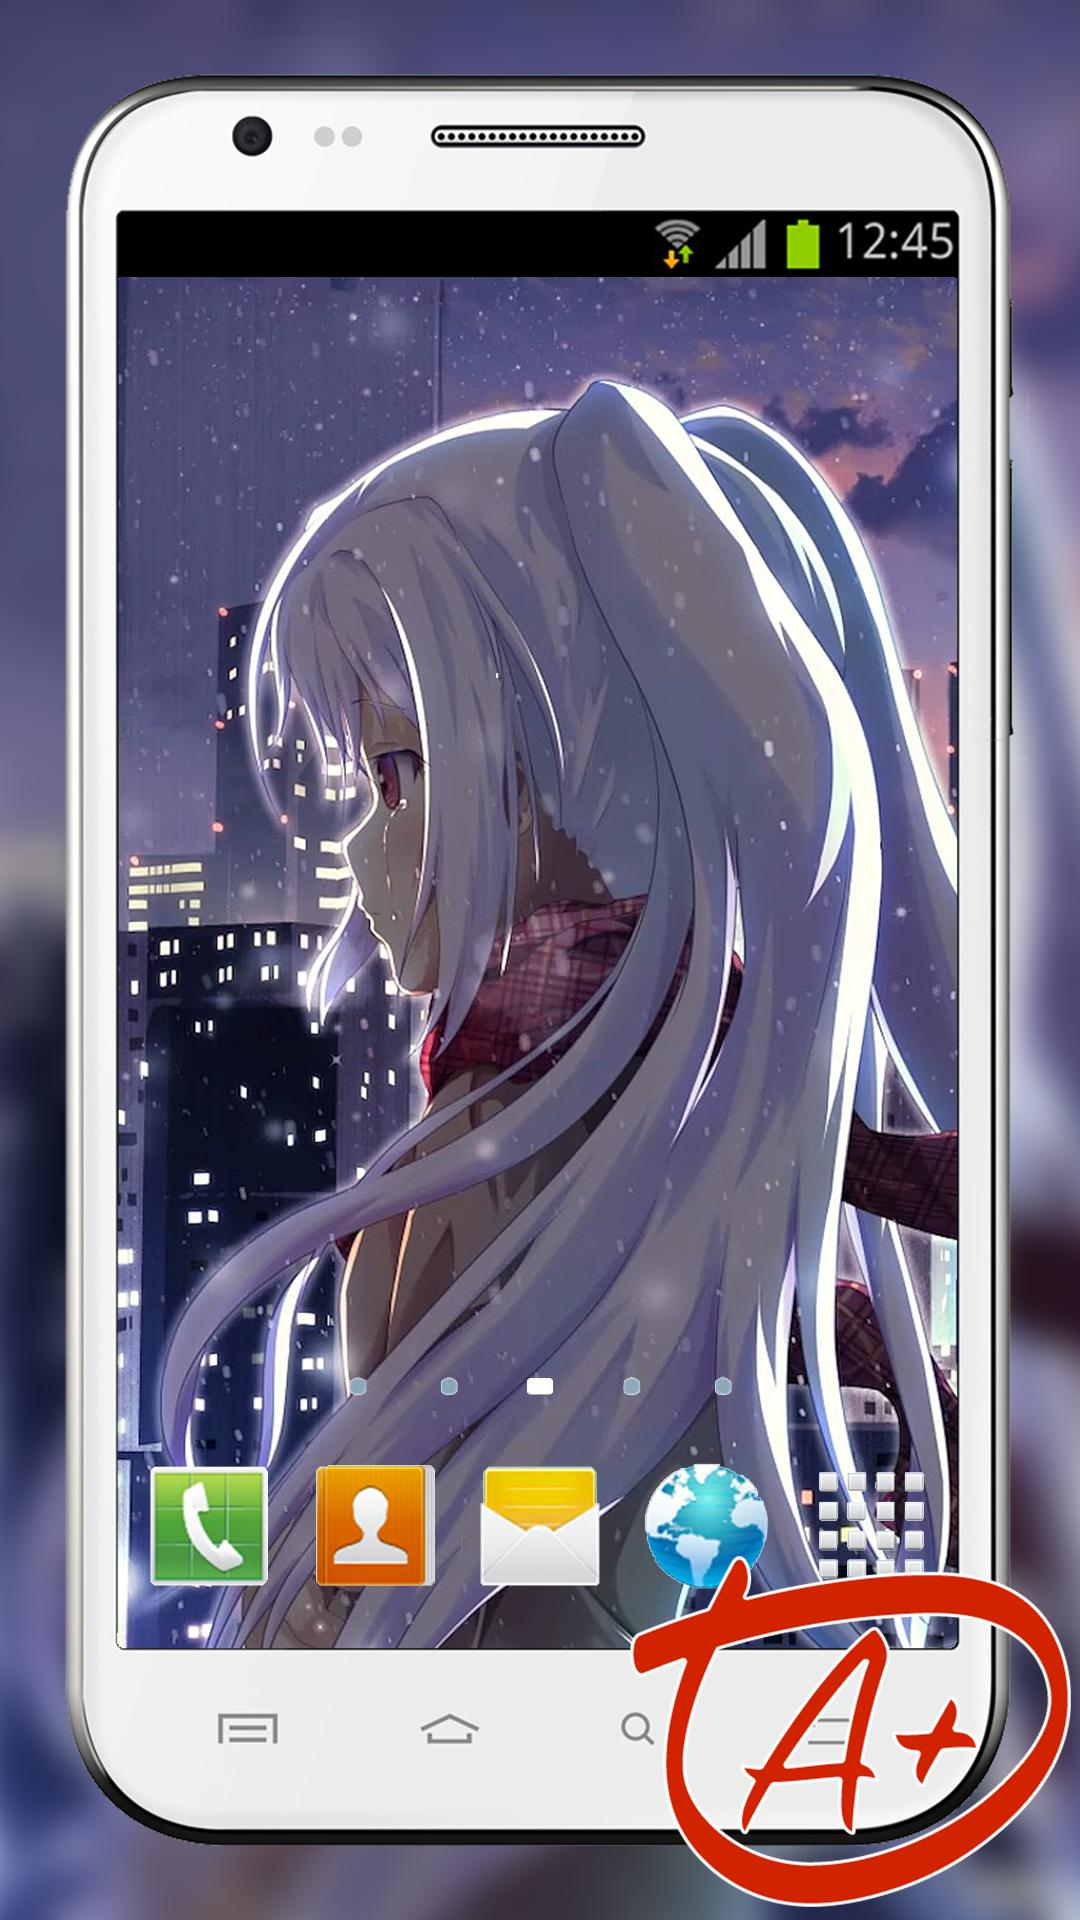 Anime Live Wallpaper of Isla (アイラ Aira) for Android - APK ...